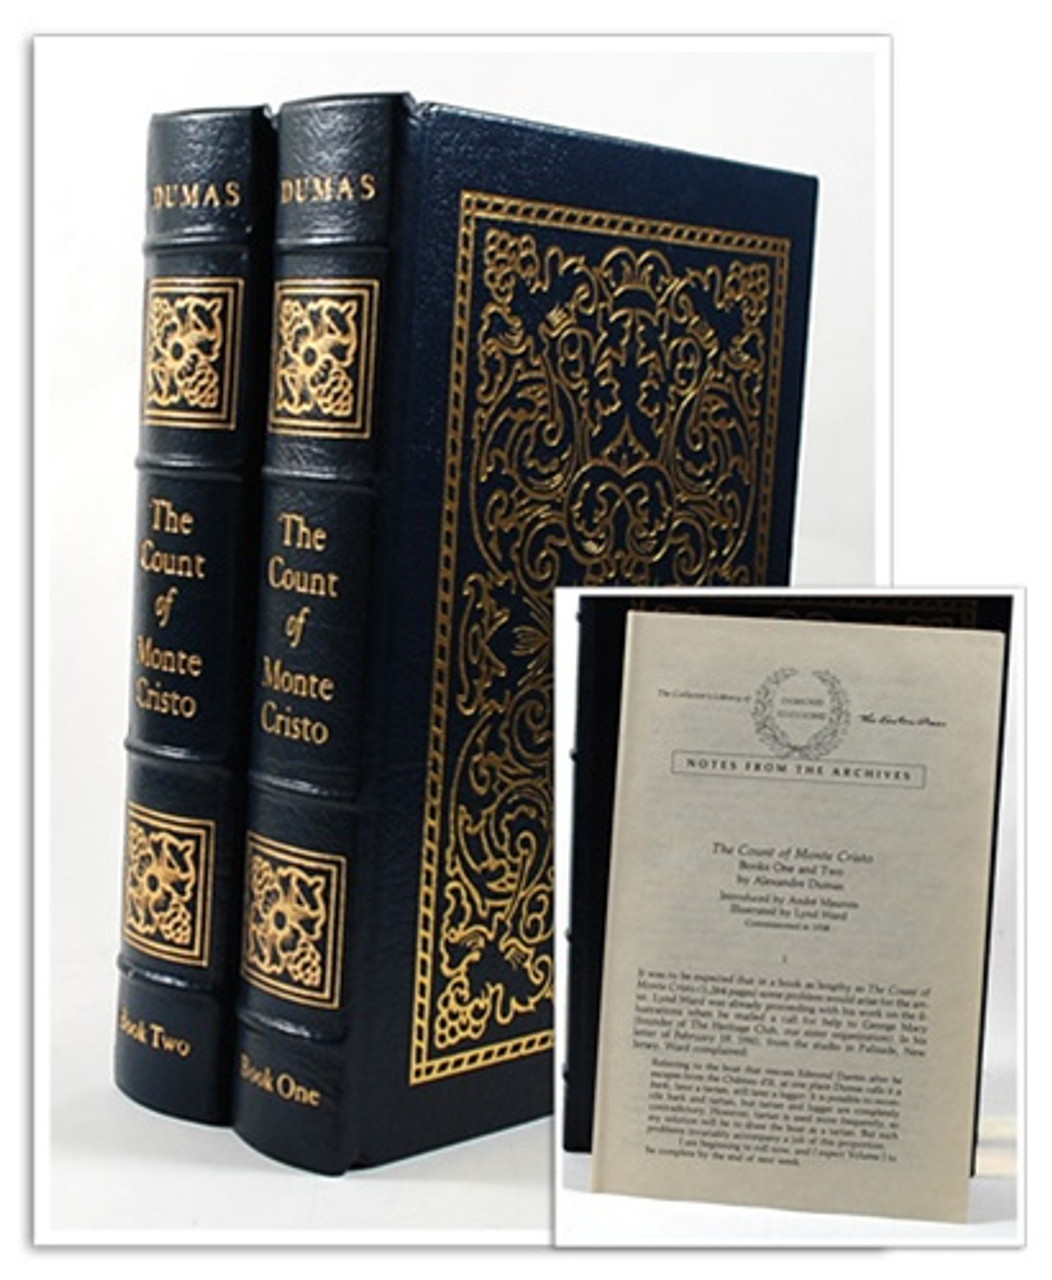 """Easton Press """"Count of Monte Cristo"""" Alexandre Dumas, 2 Vols: 1941 First Edition, Leather Bound Complete Matching Set"""